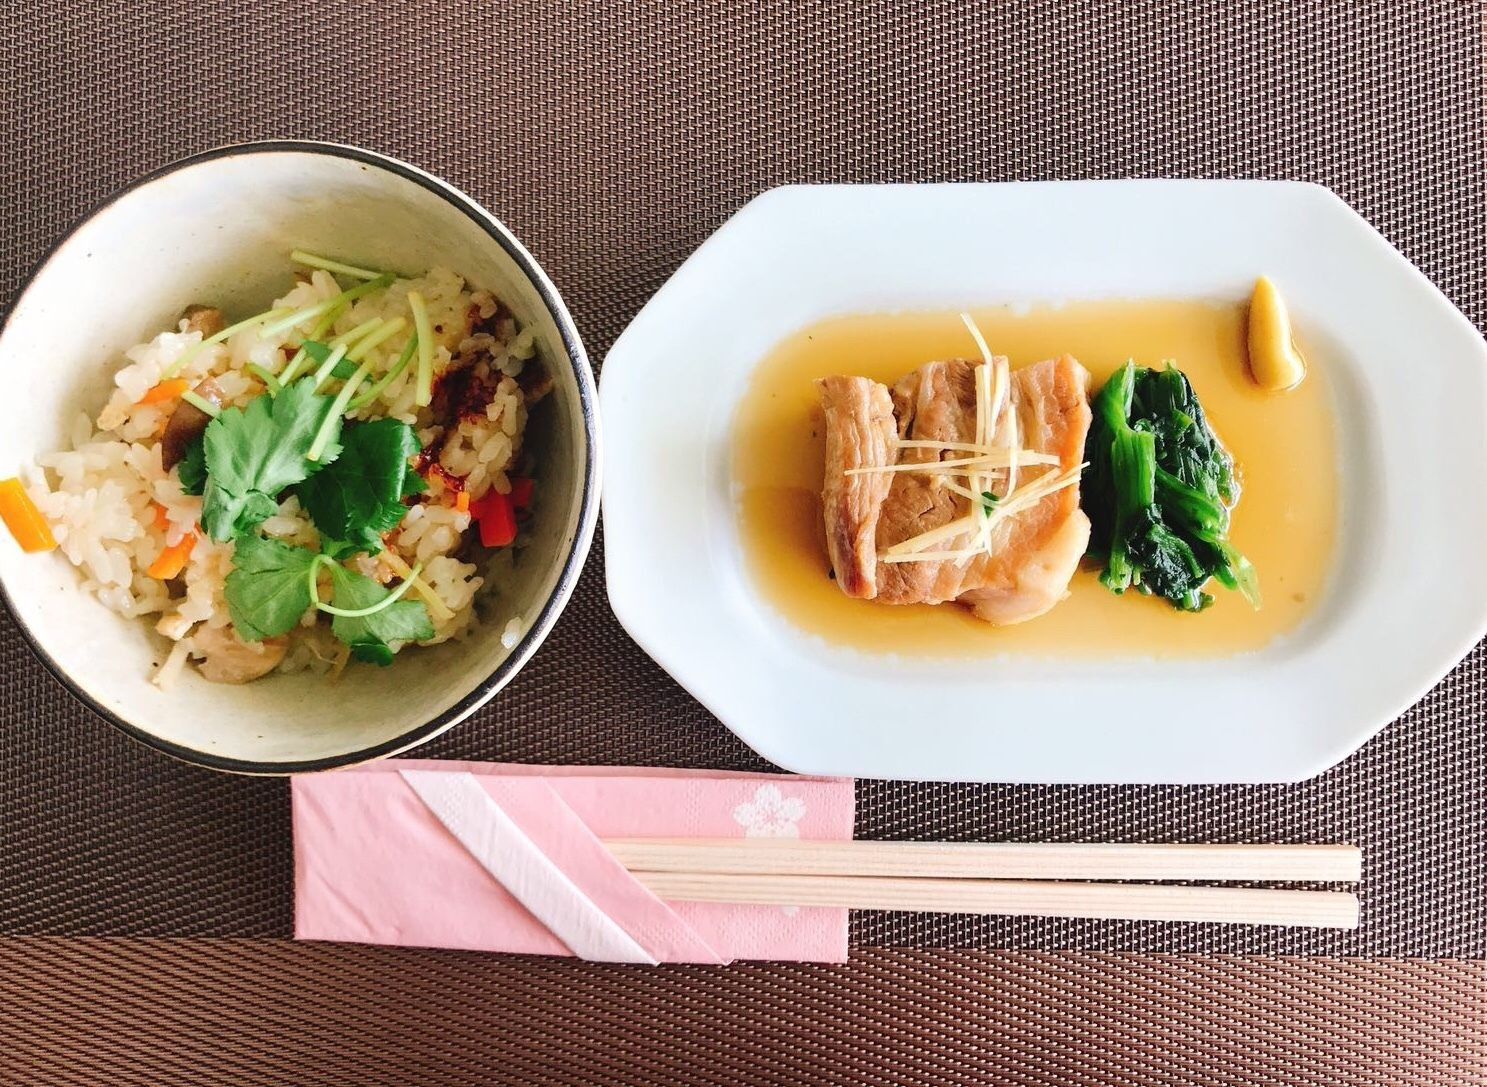 omakase cooking《Japanese home-style dishes》